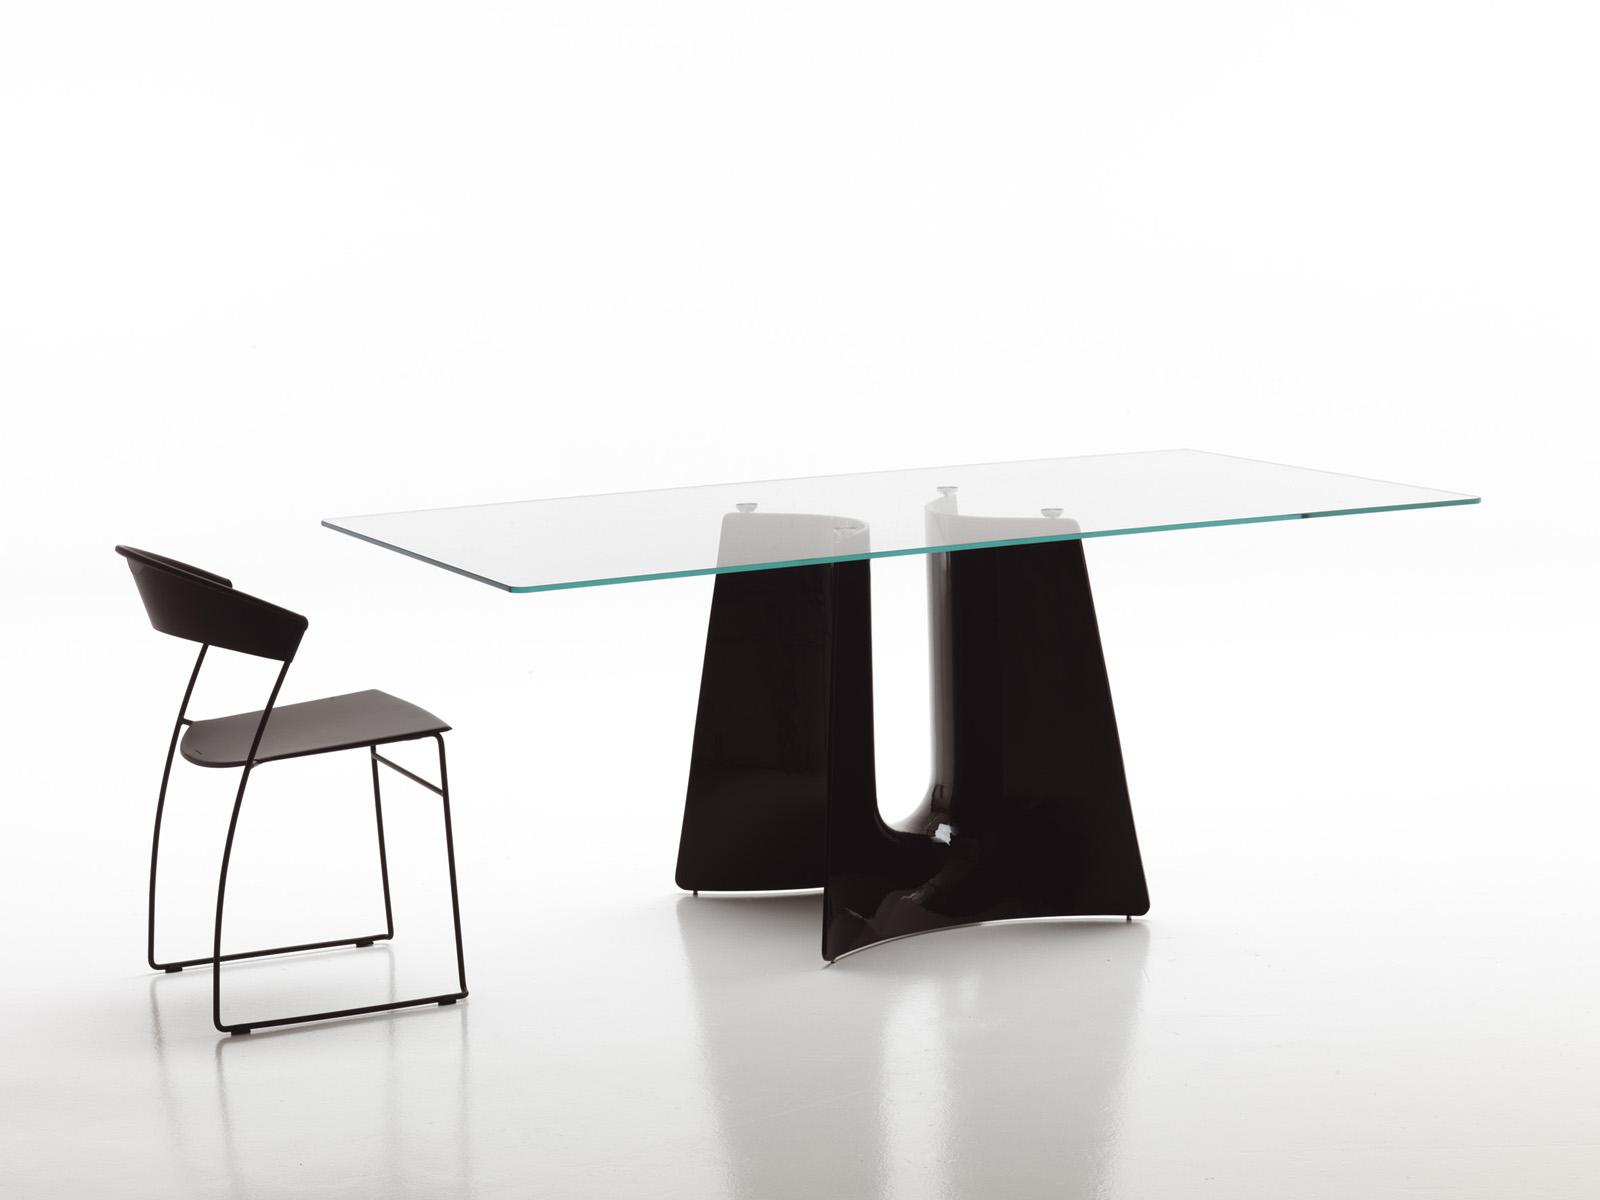 Finest cerruti baleri italia arredo design varese with for Tavoli di design famosi